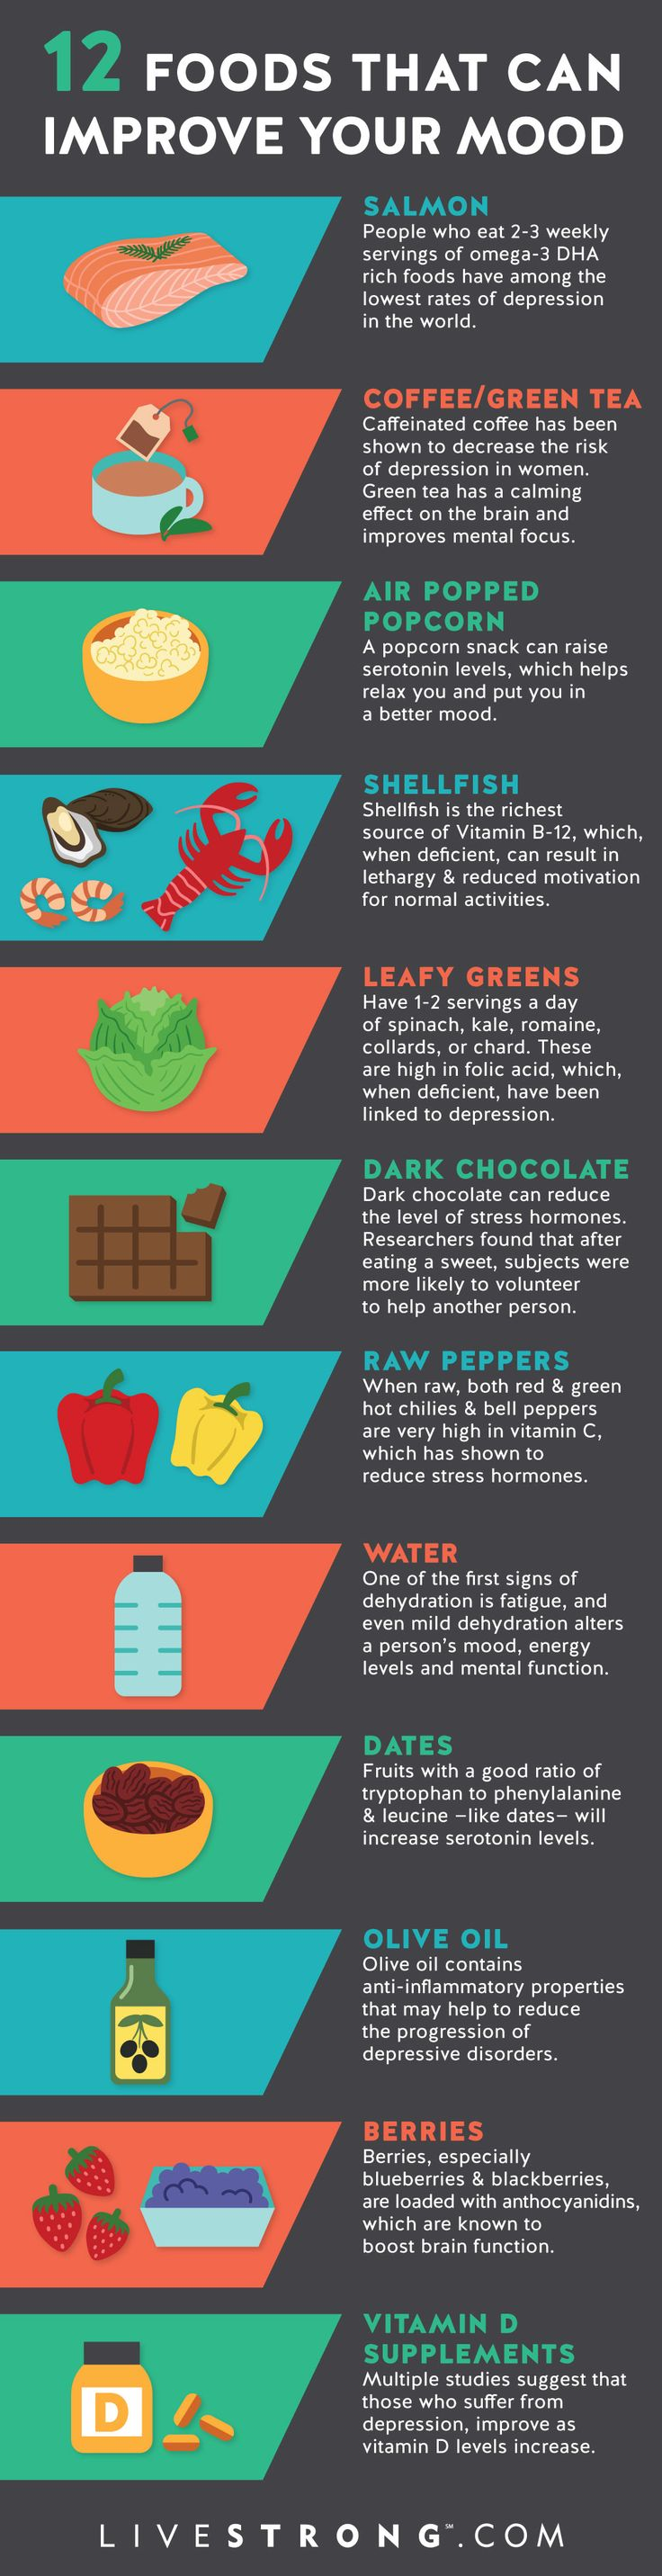 Food in general changes my mood, but this is good to know - 12 Foods That Can Improve Your Mood